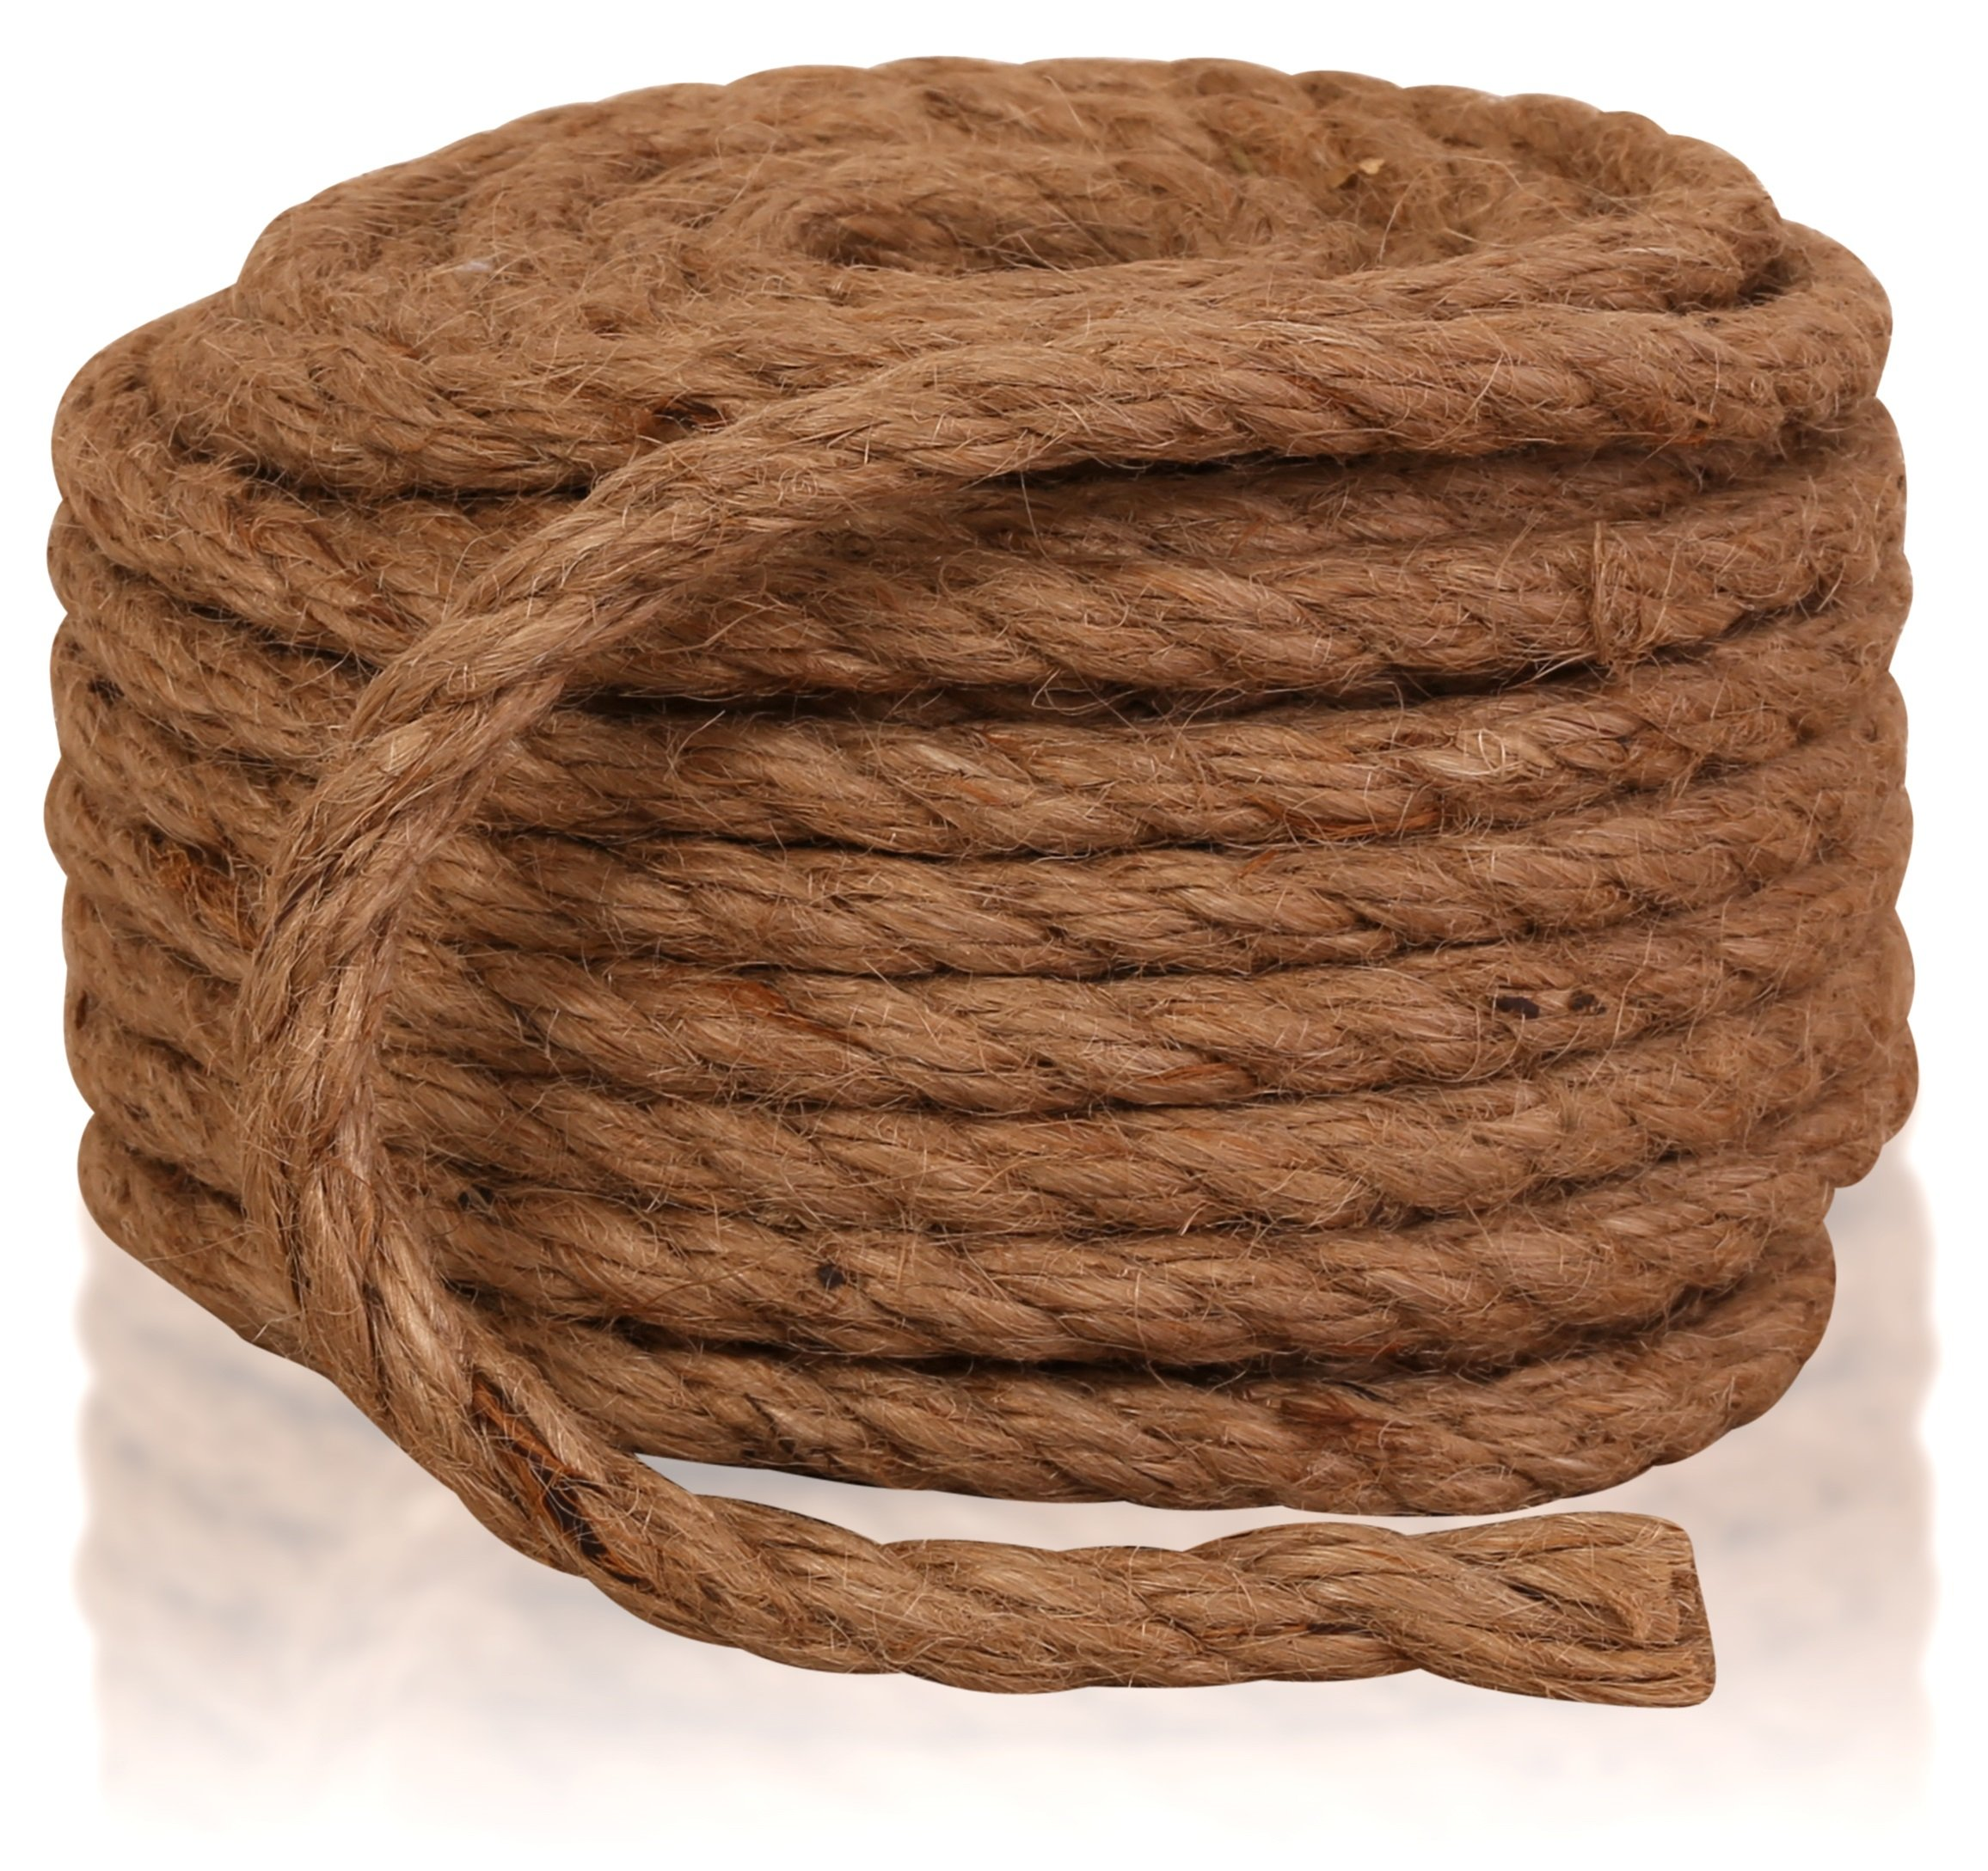 Twisted Sisal Rope, 1/2-Inch by 50-Feet, All Natural Sisal Fiber Hemp Rope Cord, Cat Scratching Post Replacement, for Arts Crafts, DIY, Decoration, Gift-Wrapping, and Burlap Potato Sacks. by Supply Guru